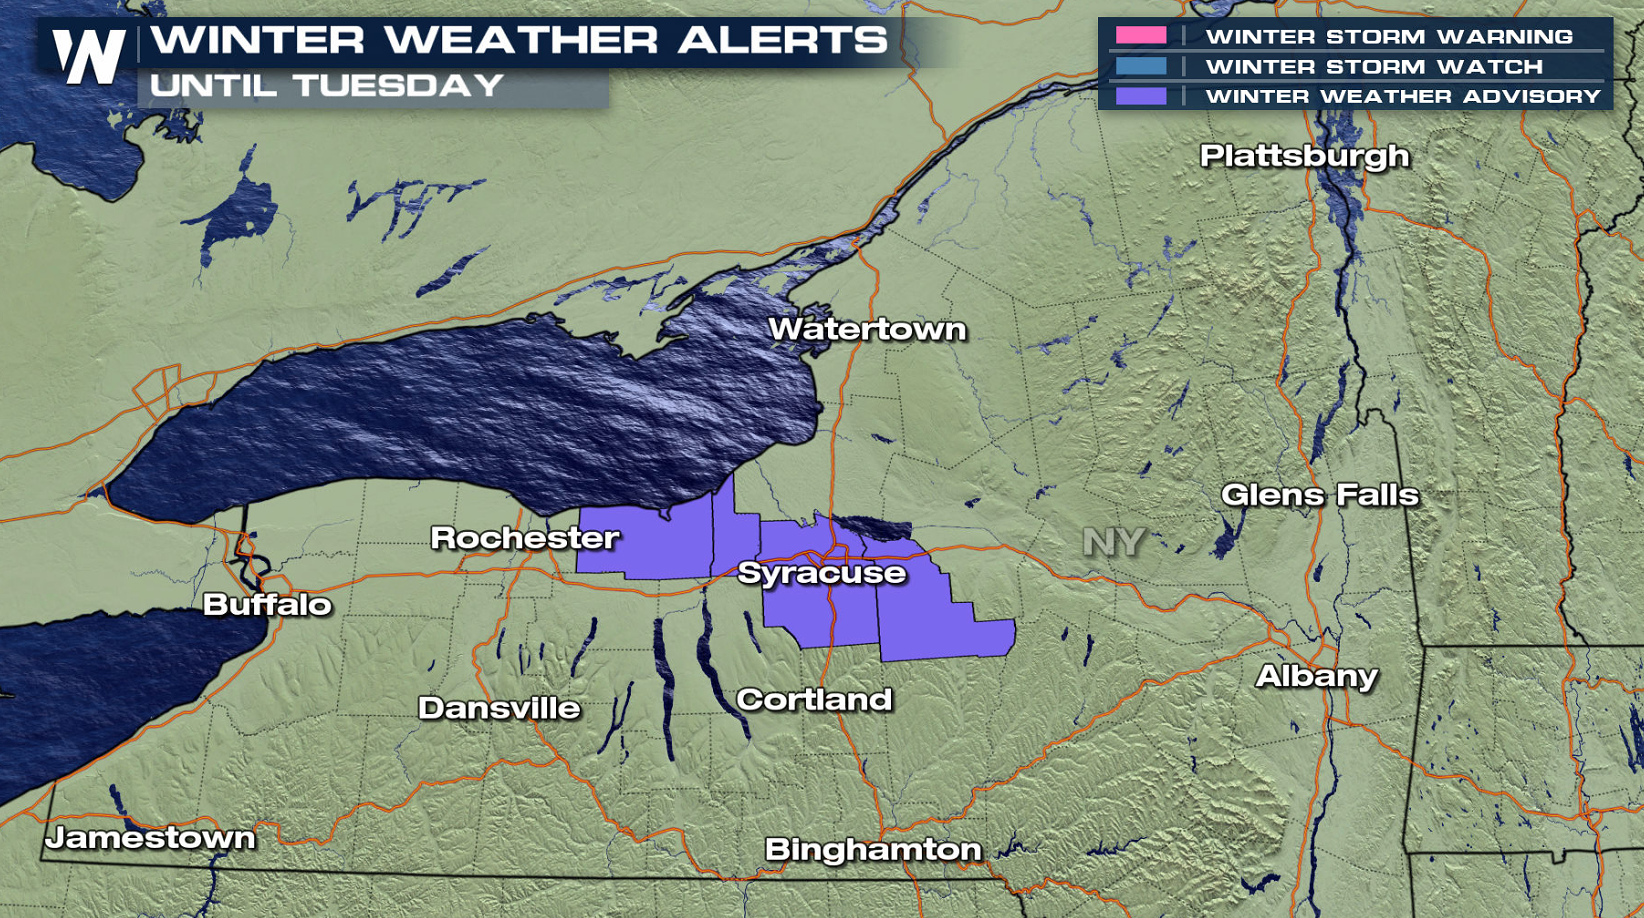 Lake Effect Snow Continues in New York